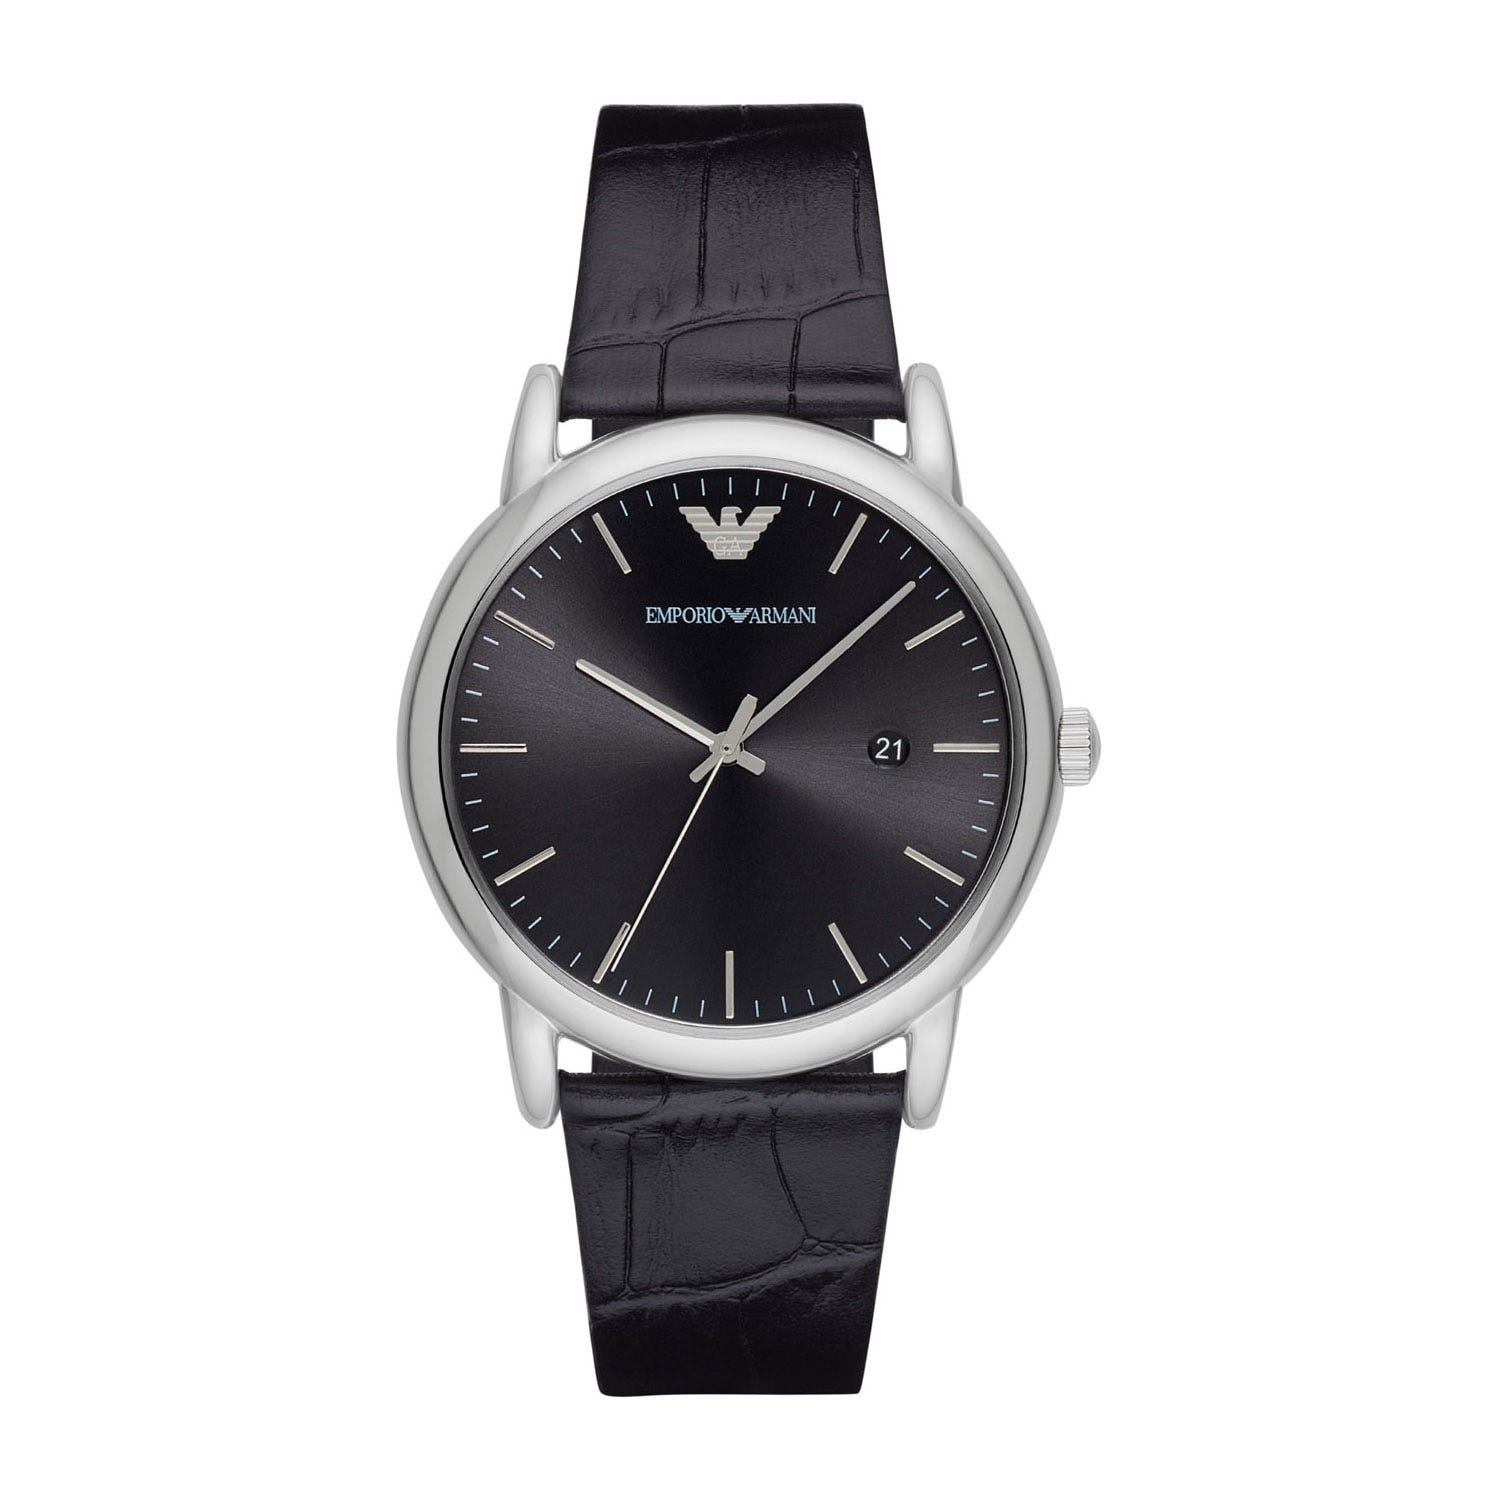 Emporio Armani Men's Black Dial and Black Leather Strap Watch